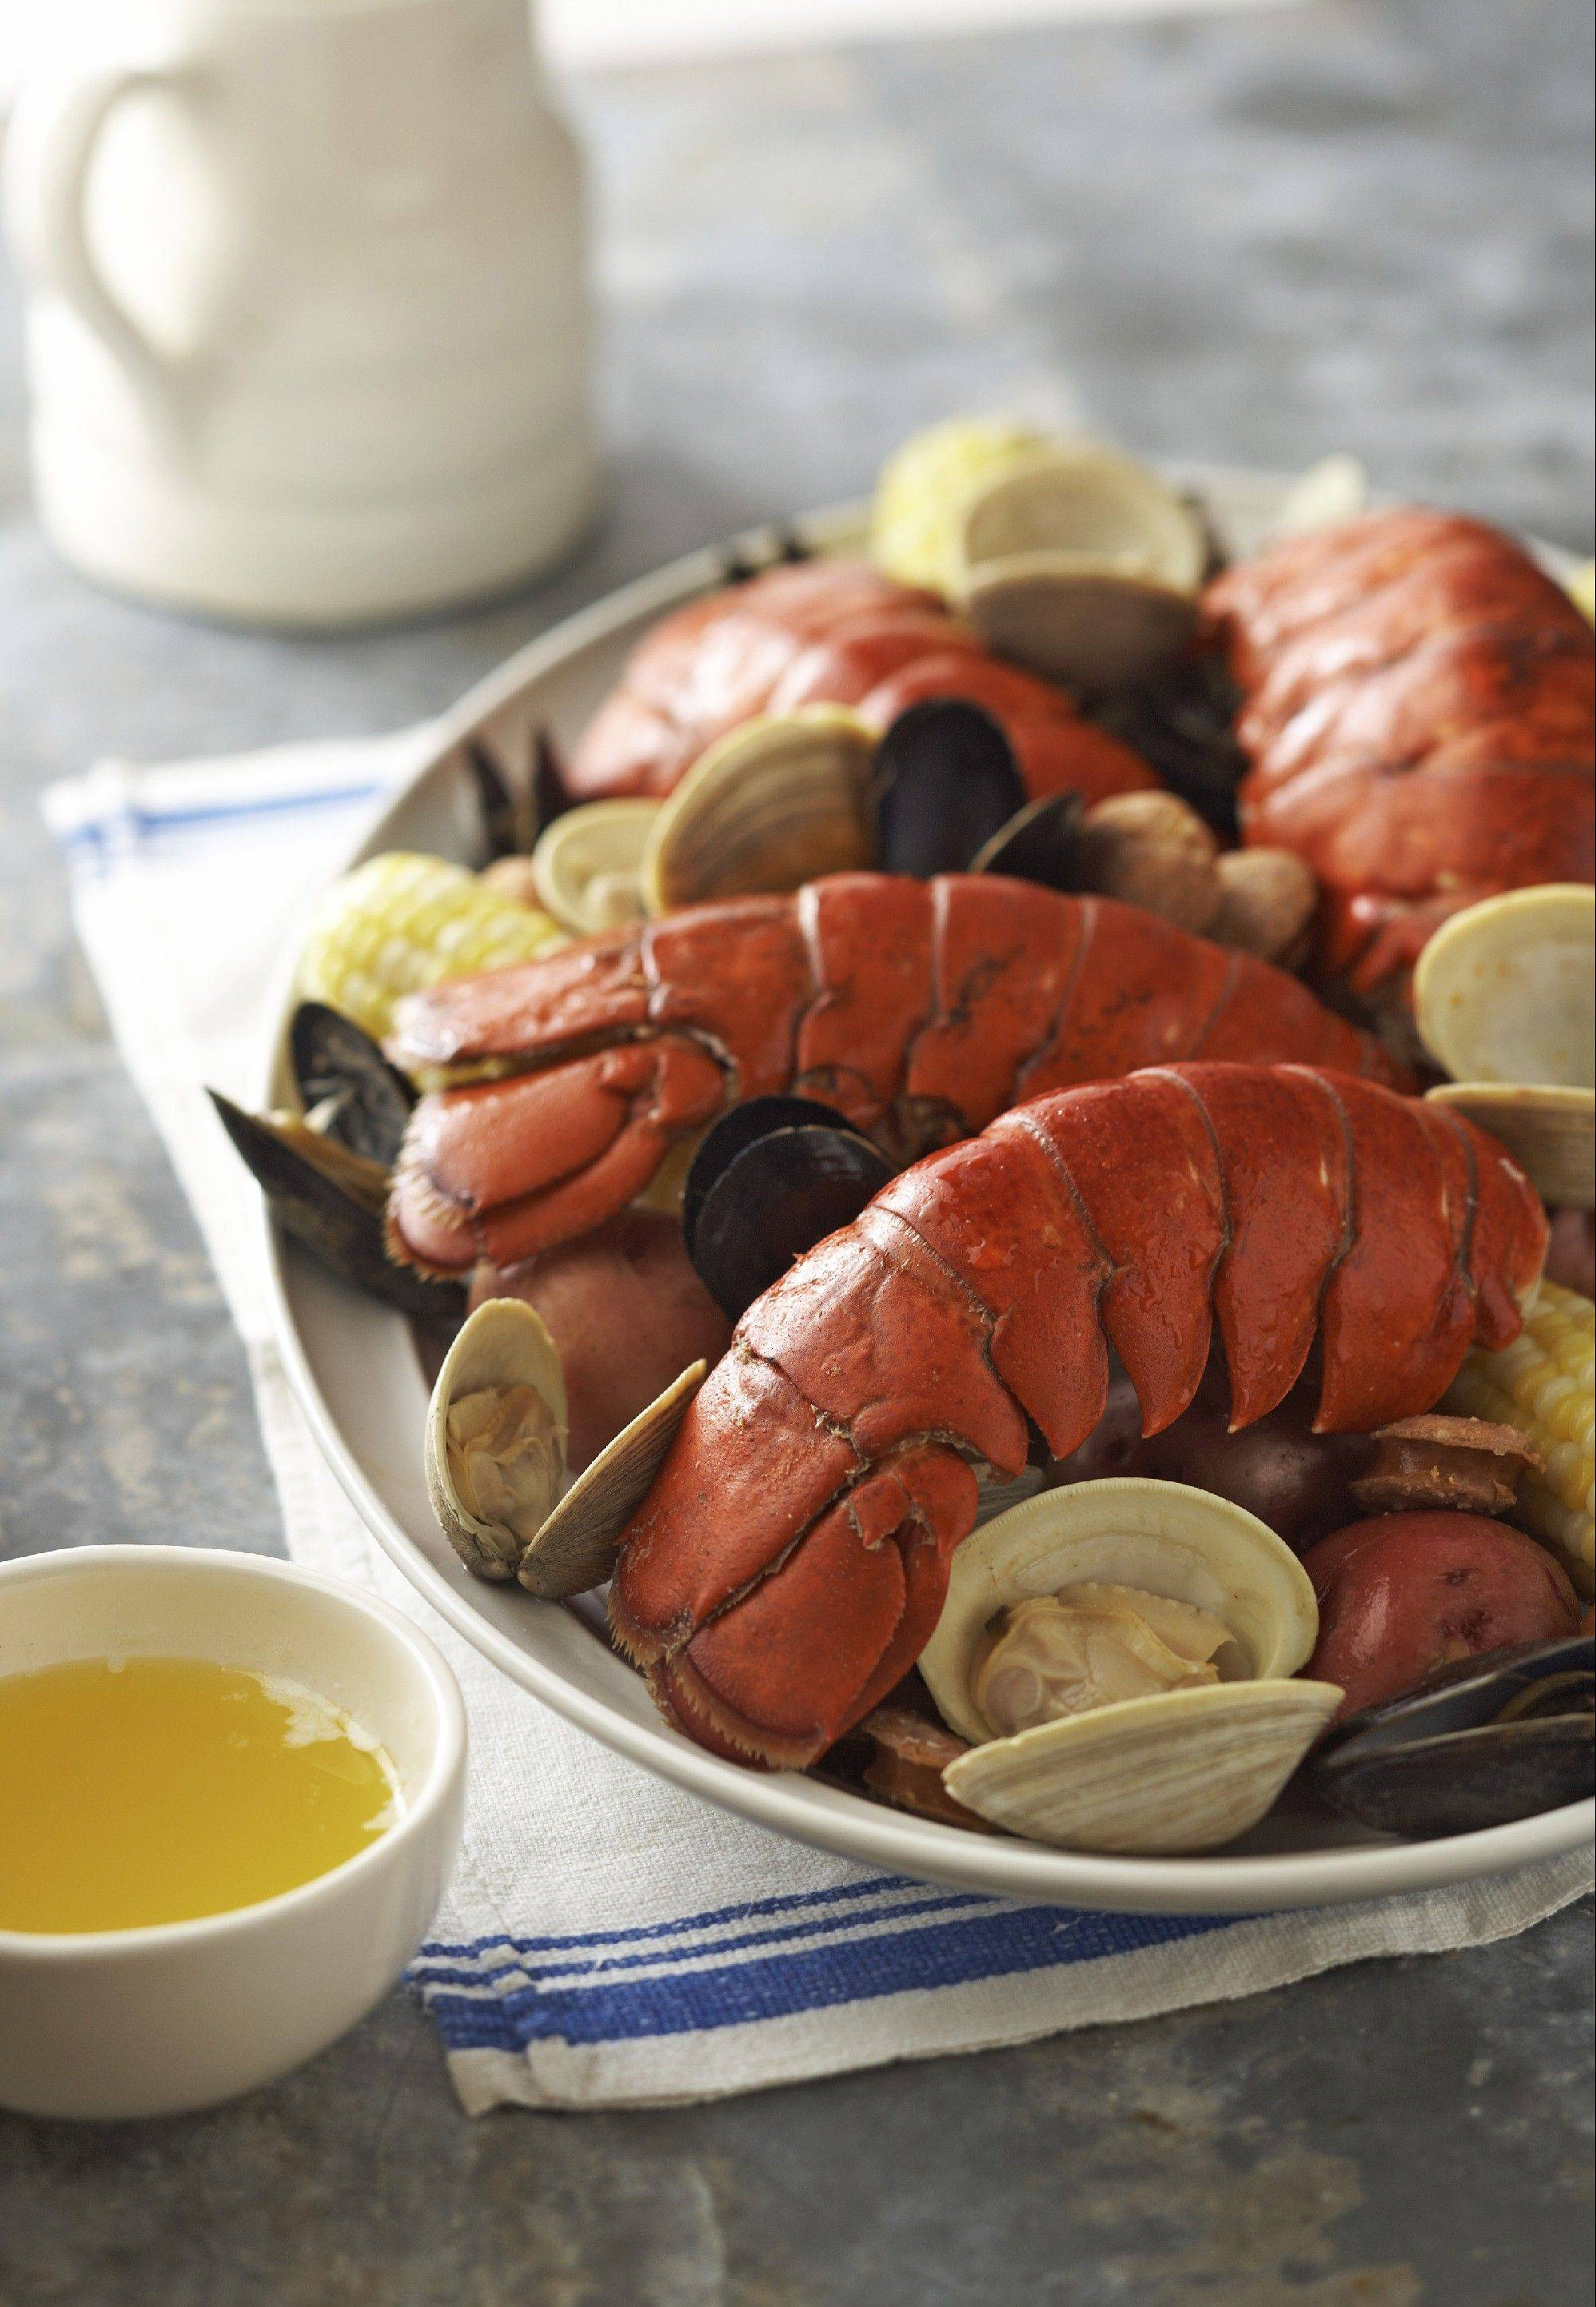 Clambake on the Grill